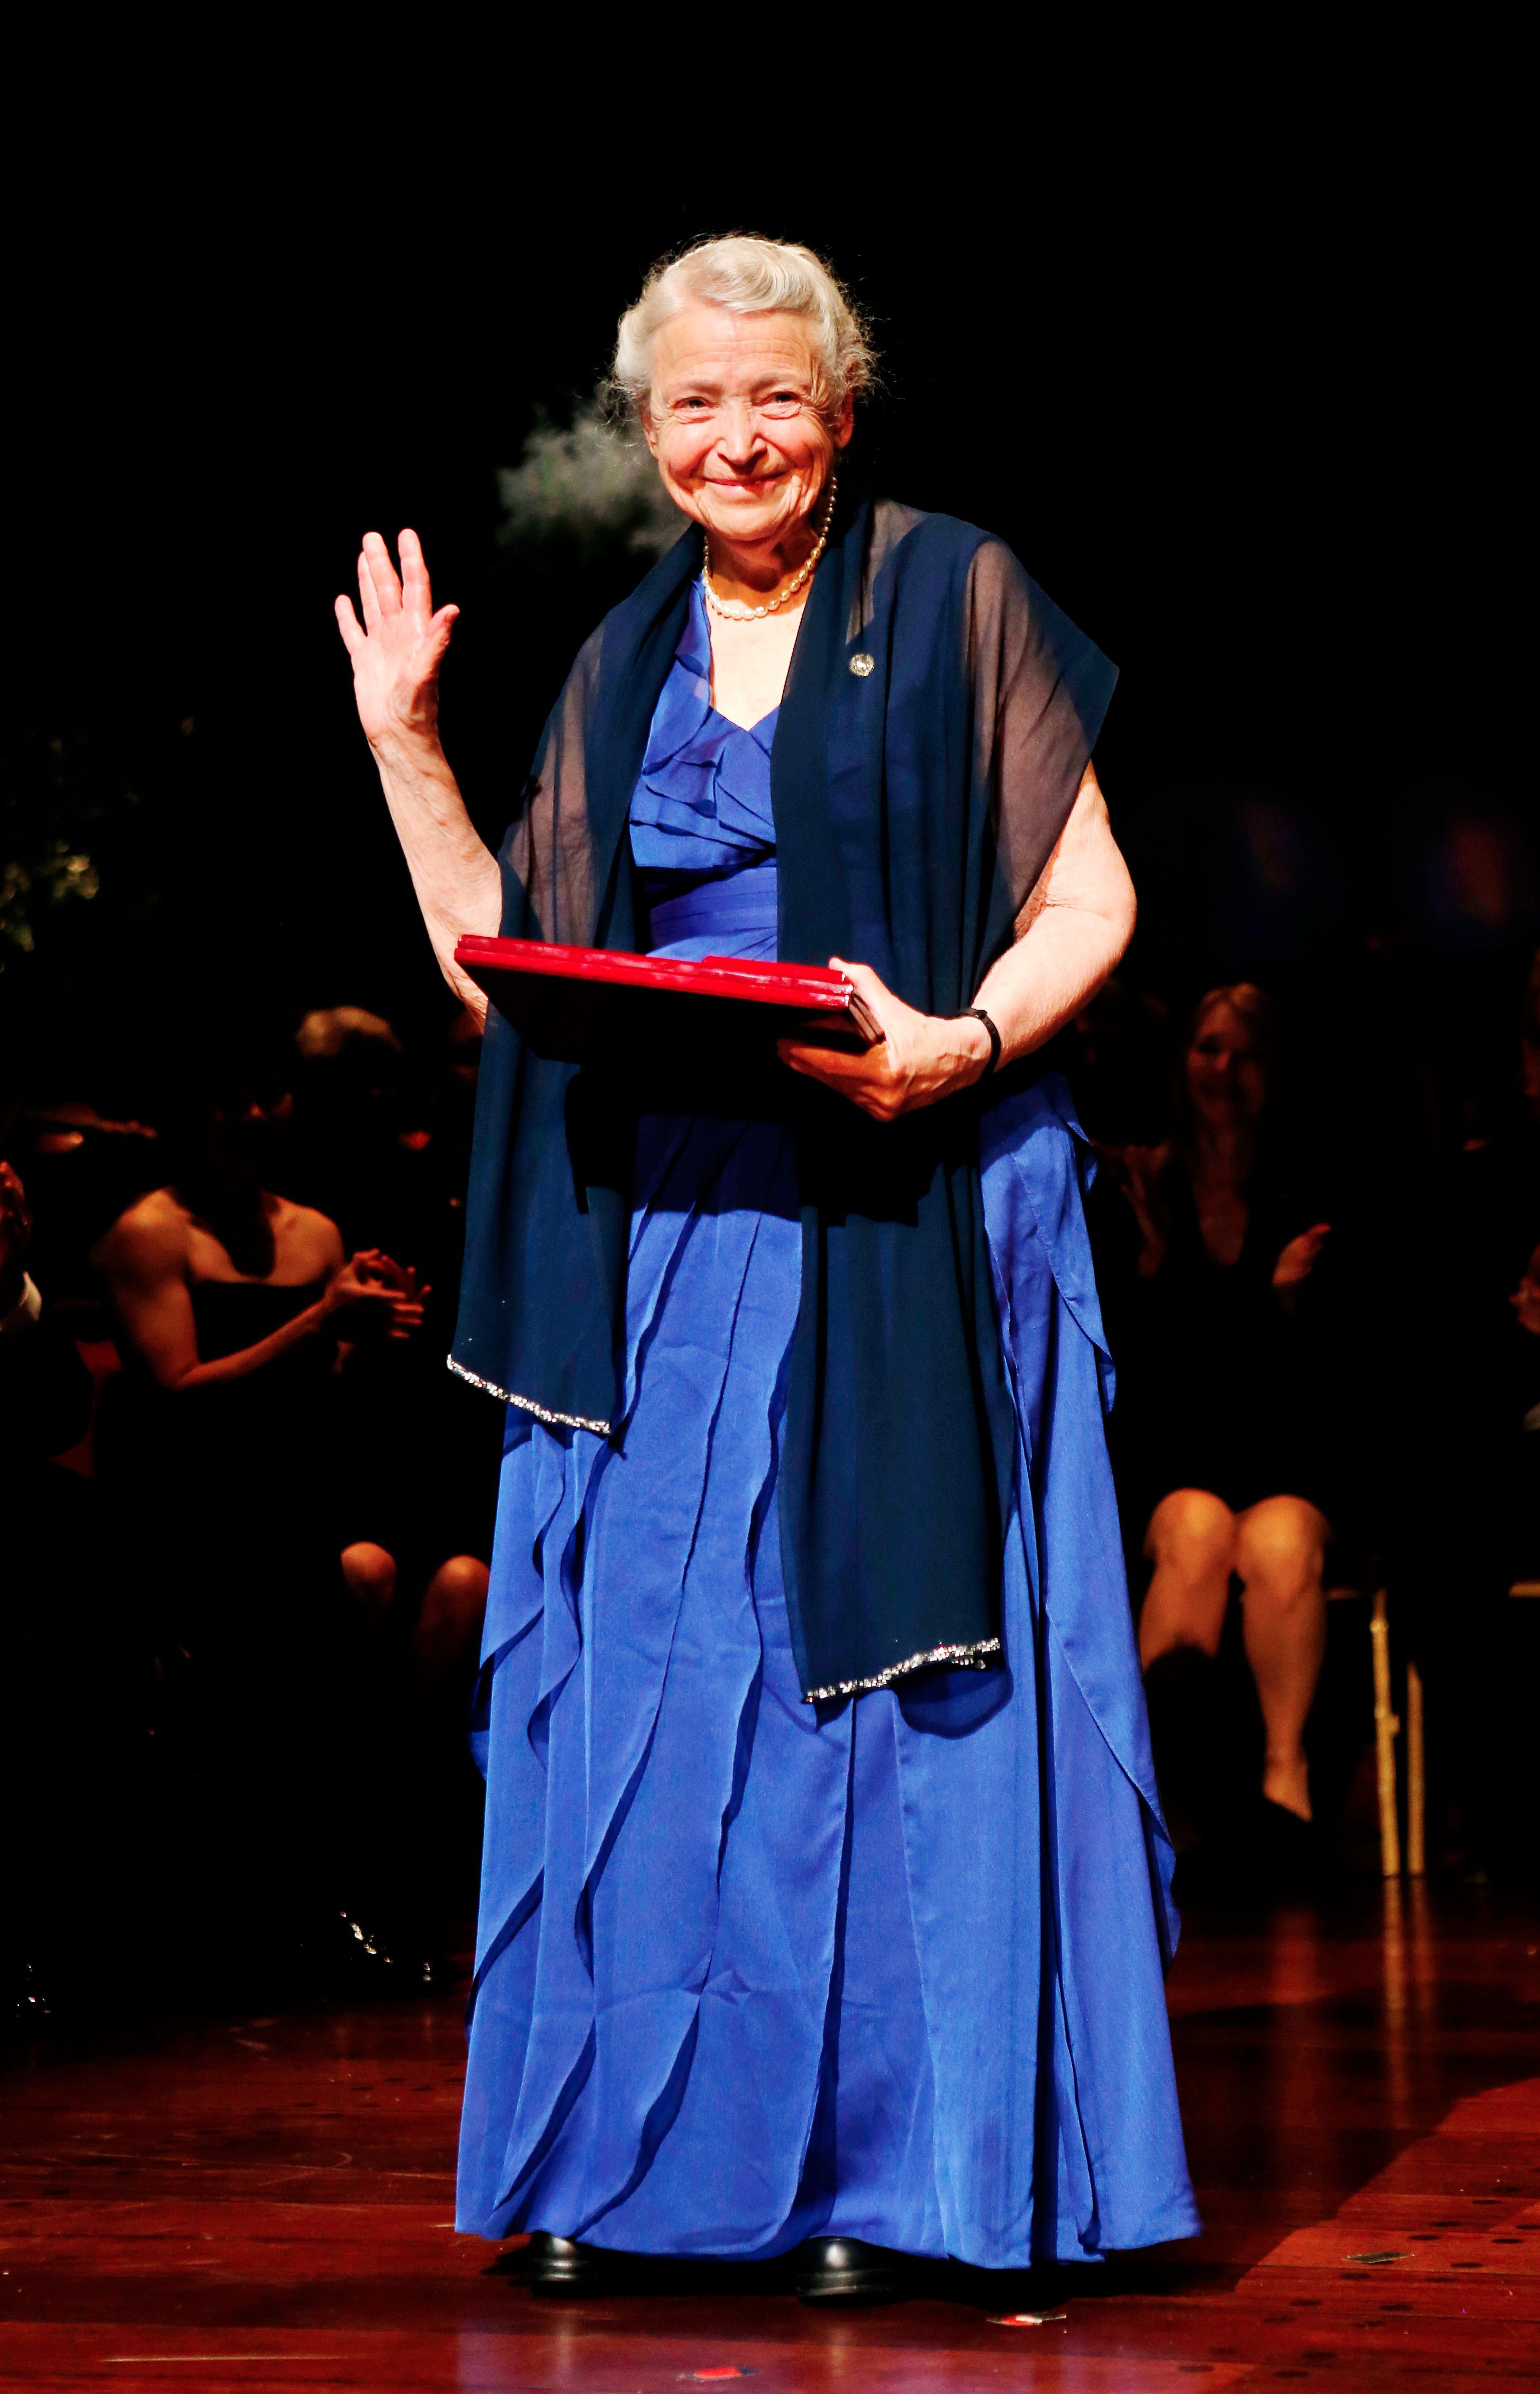 Mildred S. Dresselhaus of the Massachusetts Institute of Technology, USA, stands on stage after receiving the prestigious 2012 Kavli prize for nanoscience, in Oslo, on September 4, 2012. AFP/Getty Images